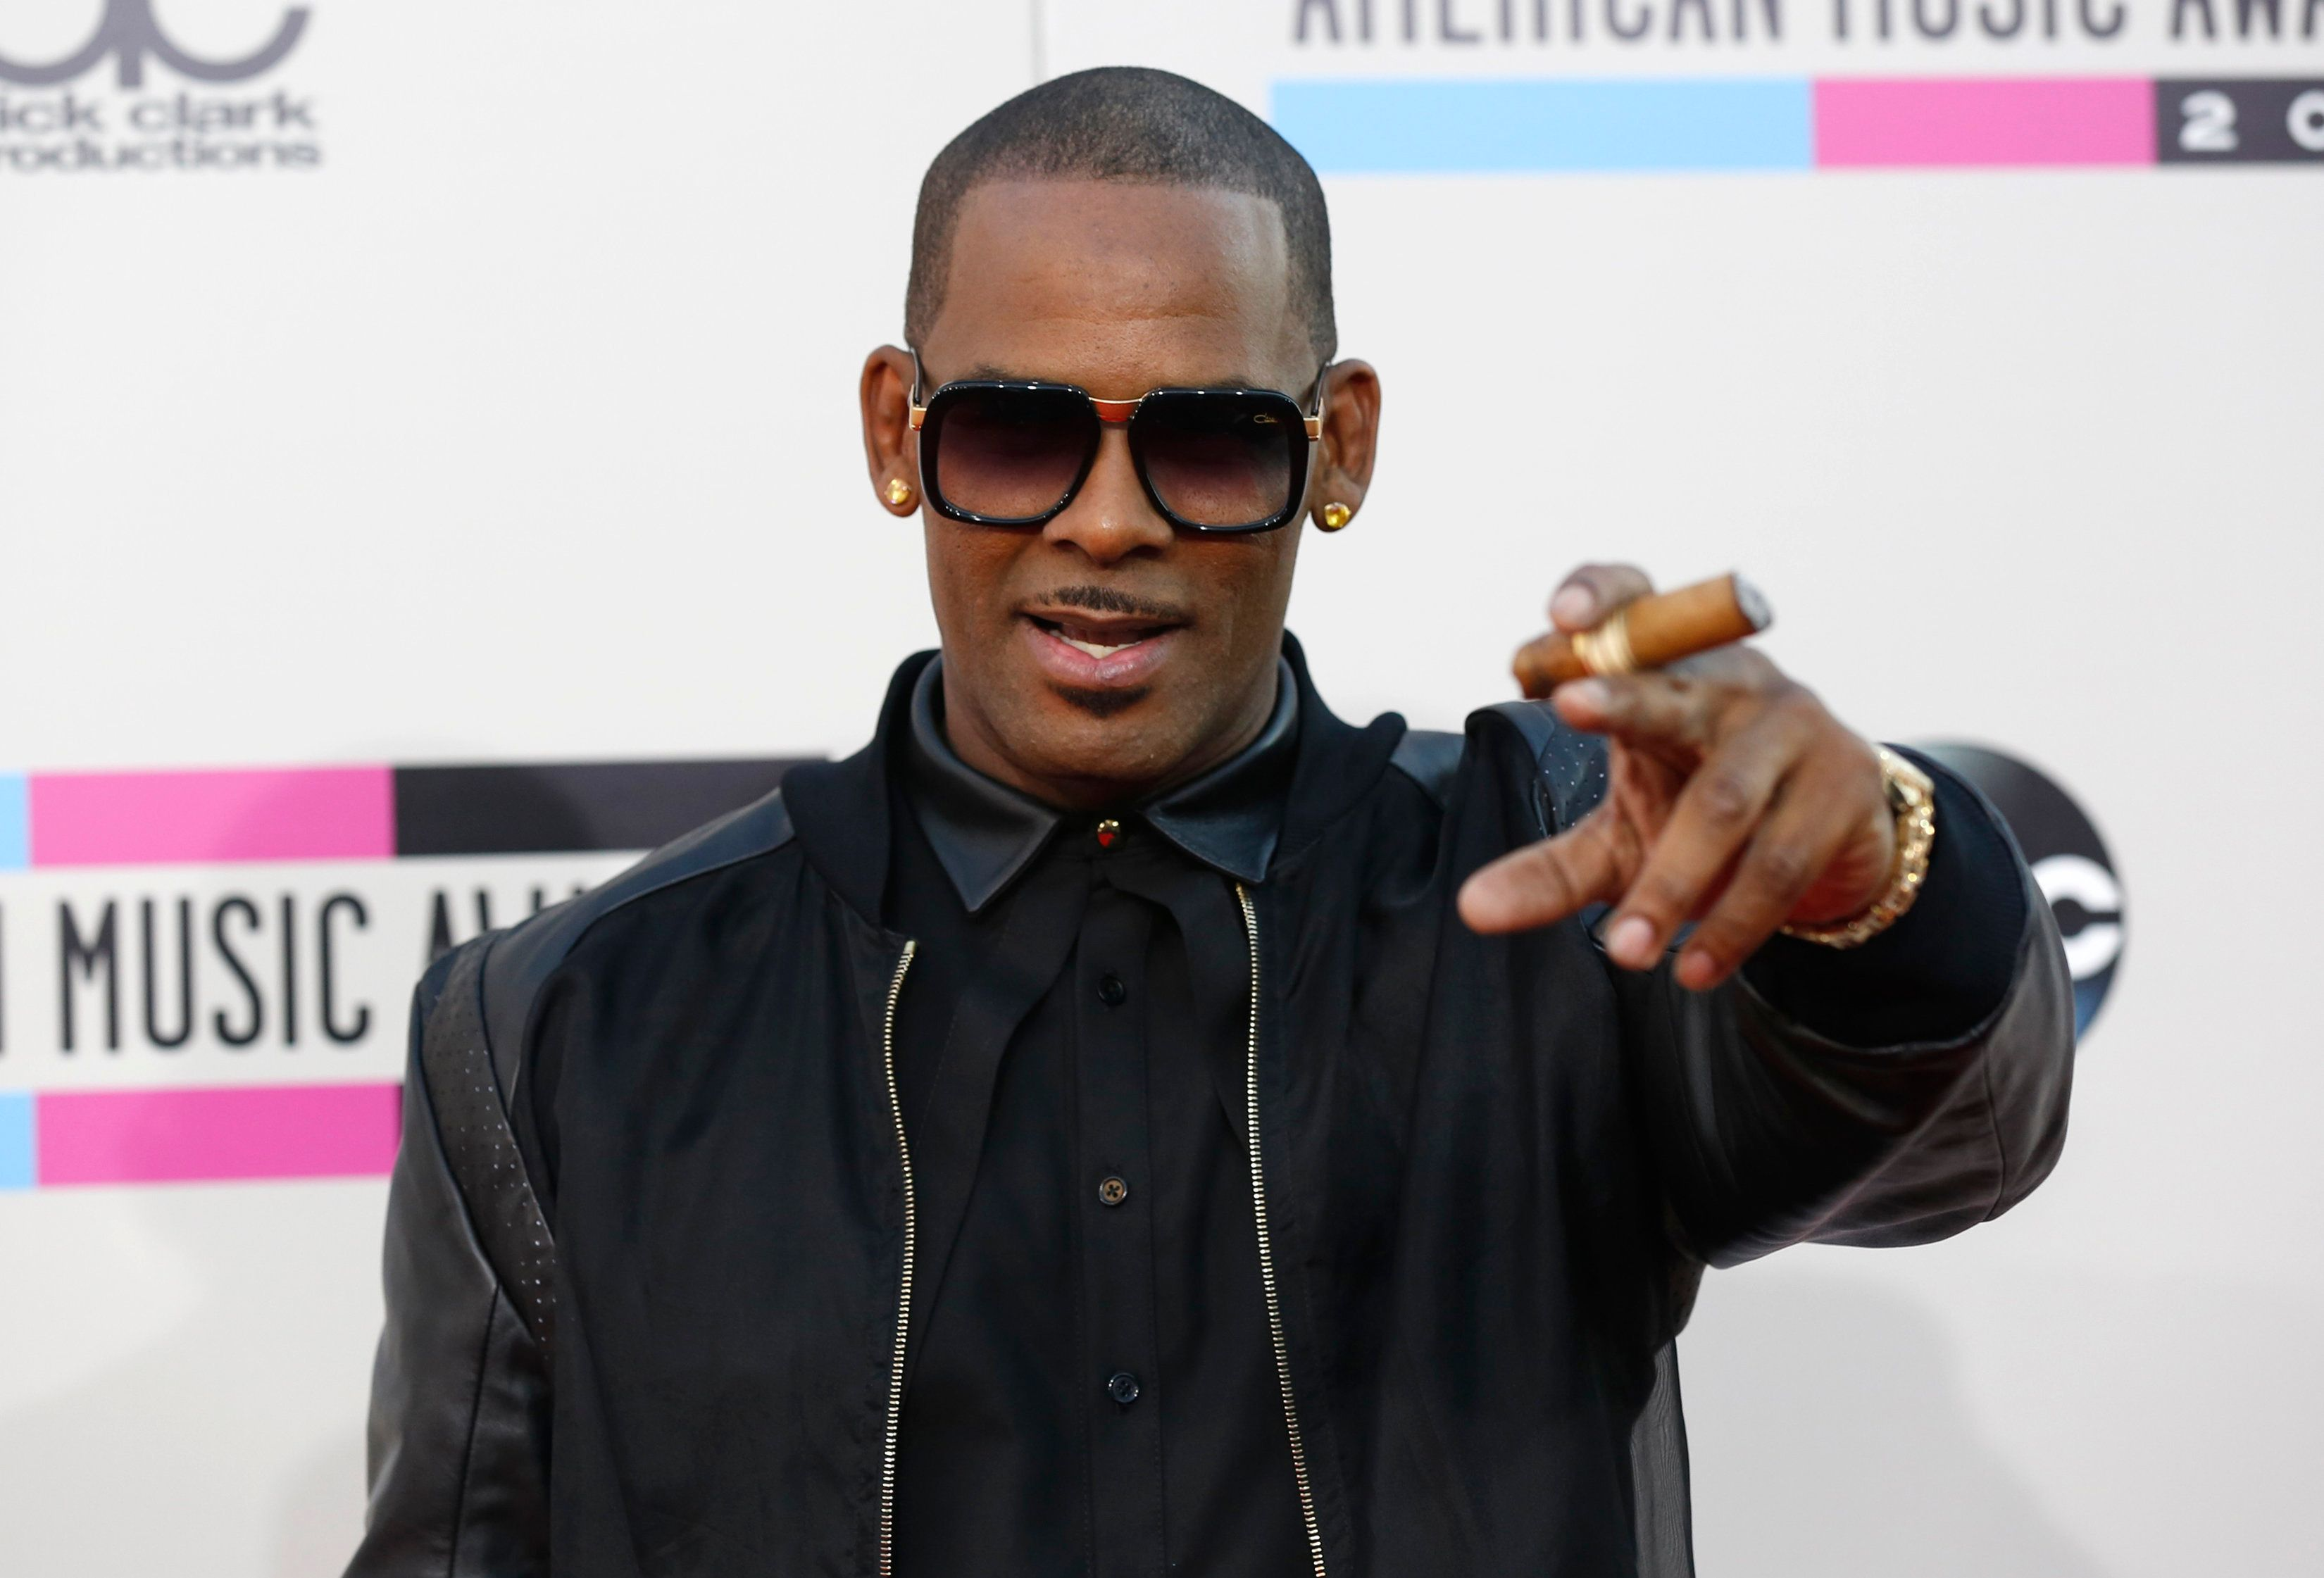 R. Kelly's Alleged Captive Speaks Out: 'I'm Not Being Brainwashed'